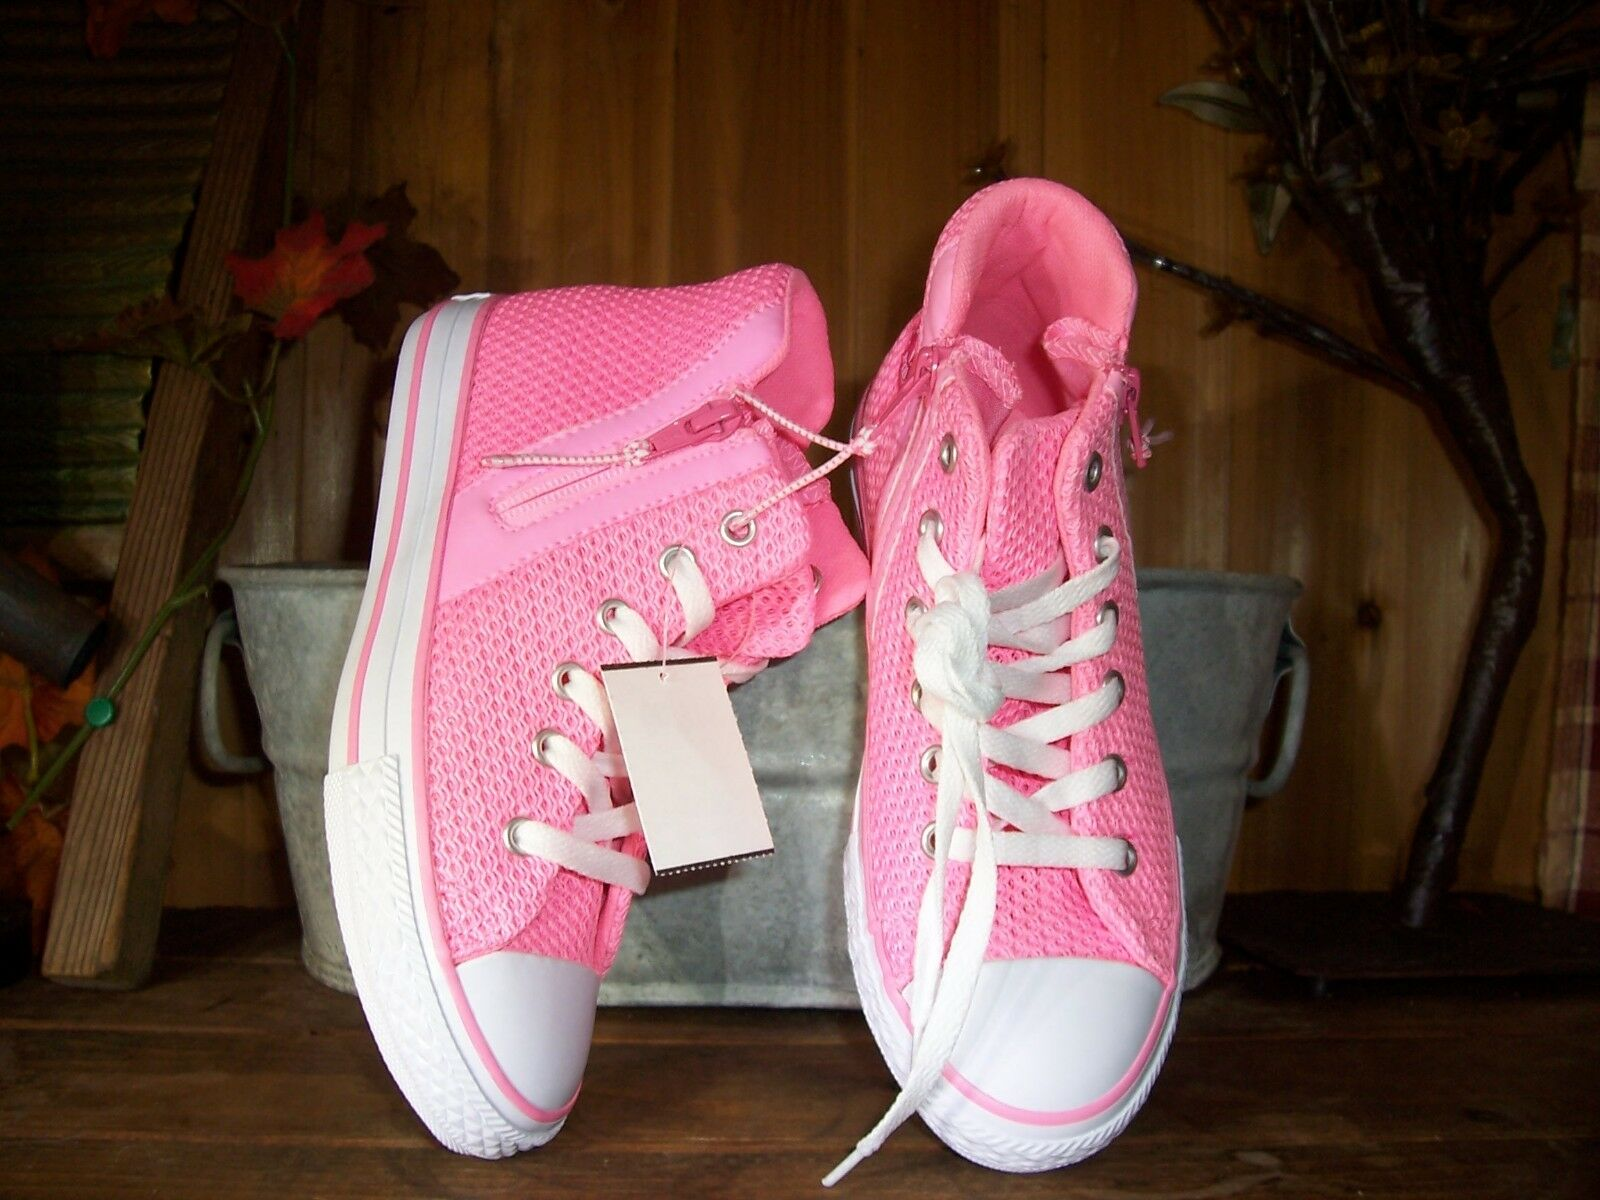 CONVERSE GIRLS ATHLETIC SHOES SIZE 6M